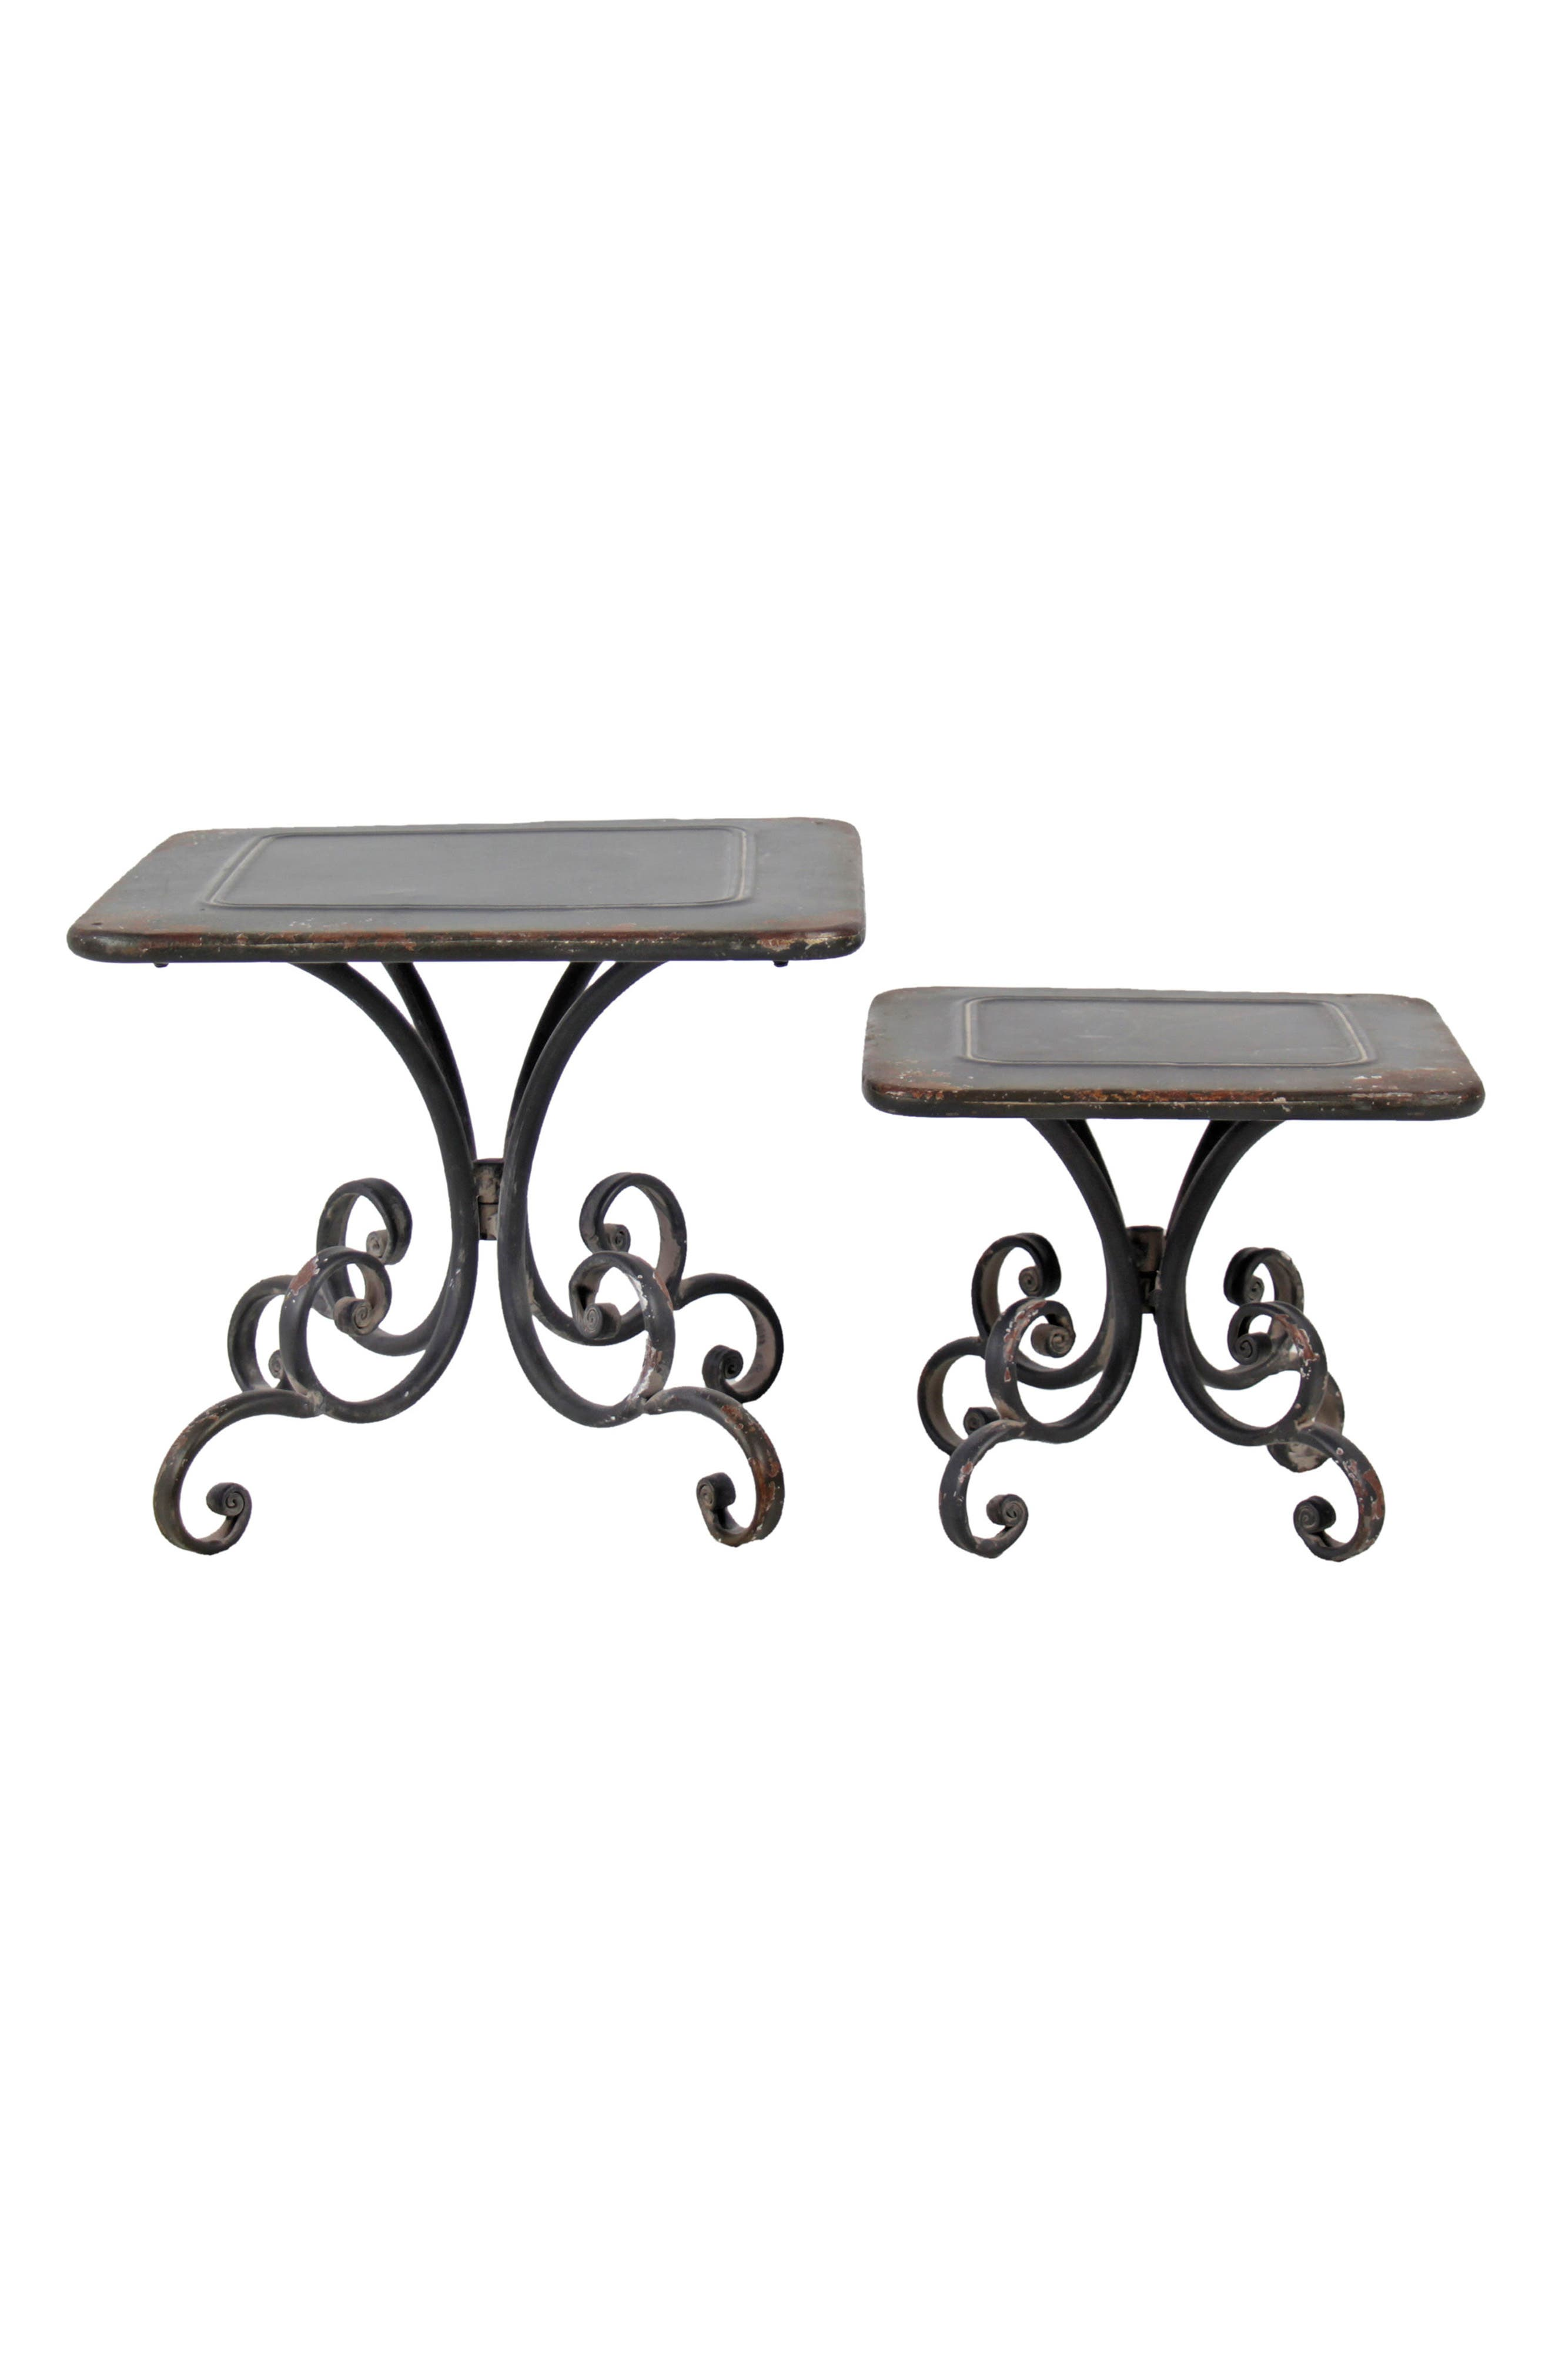 Main Image - Foreside Scroll Set of 2 Pedestals